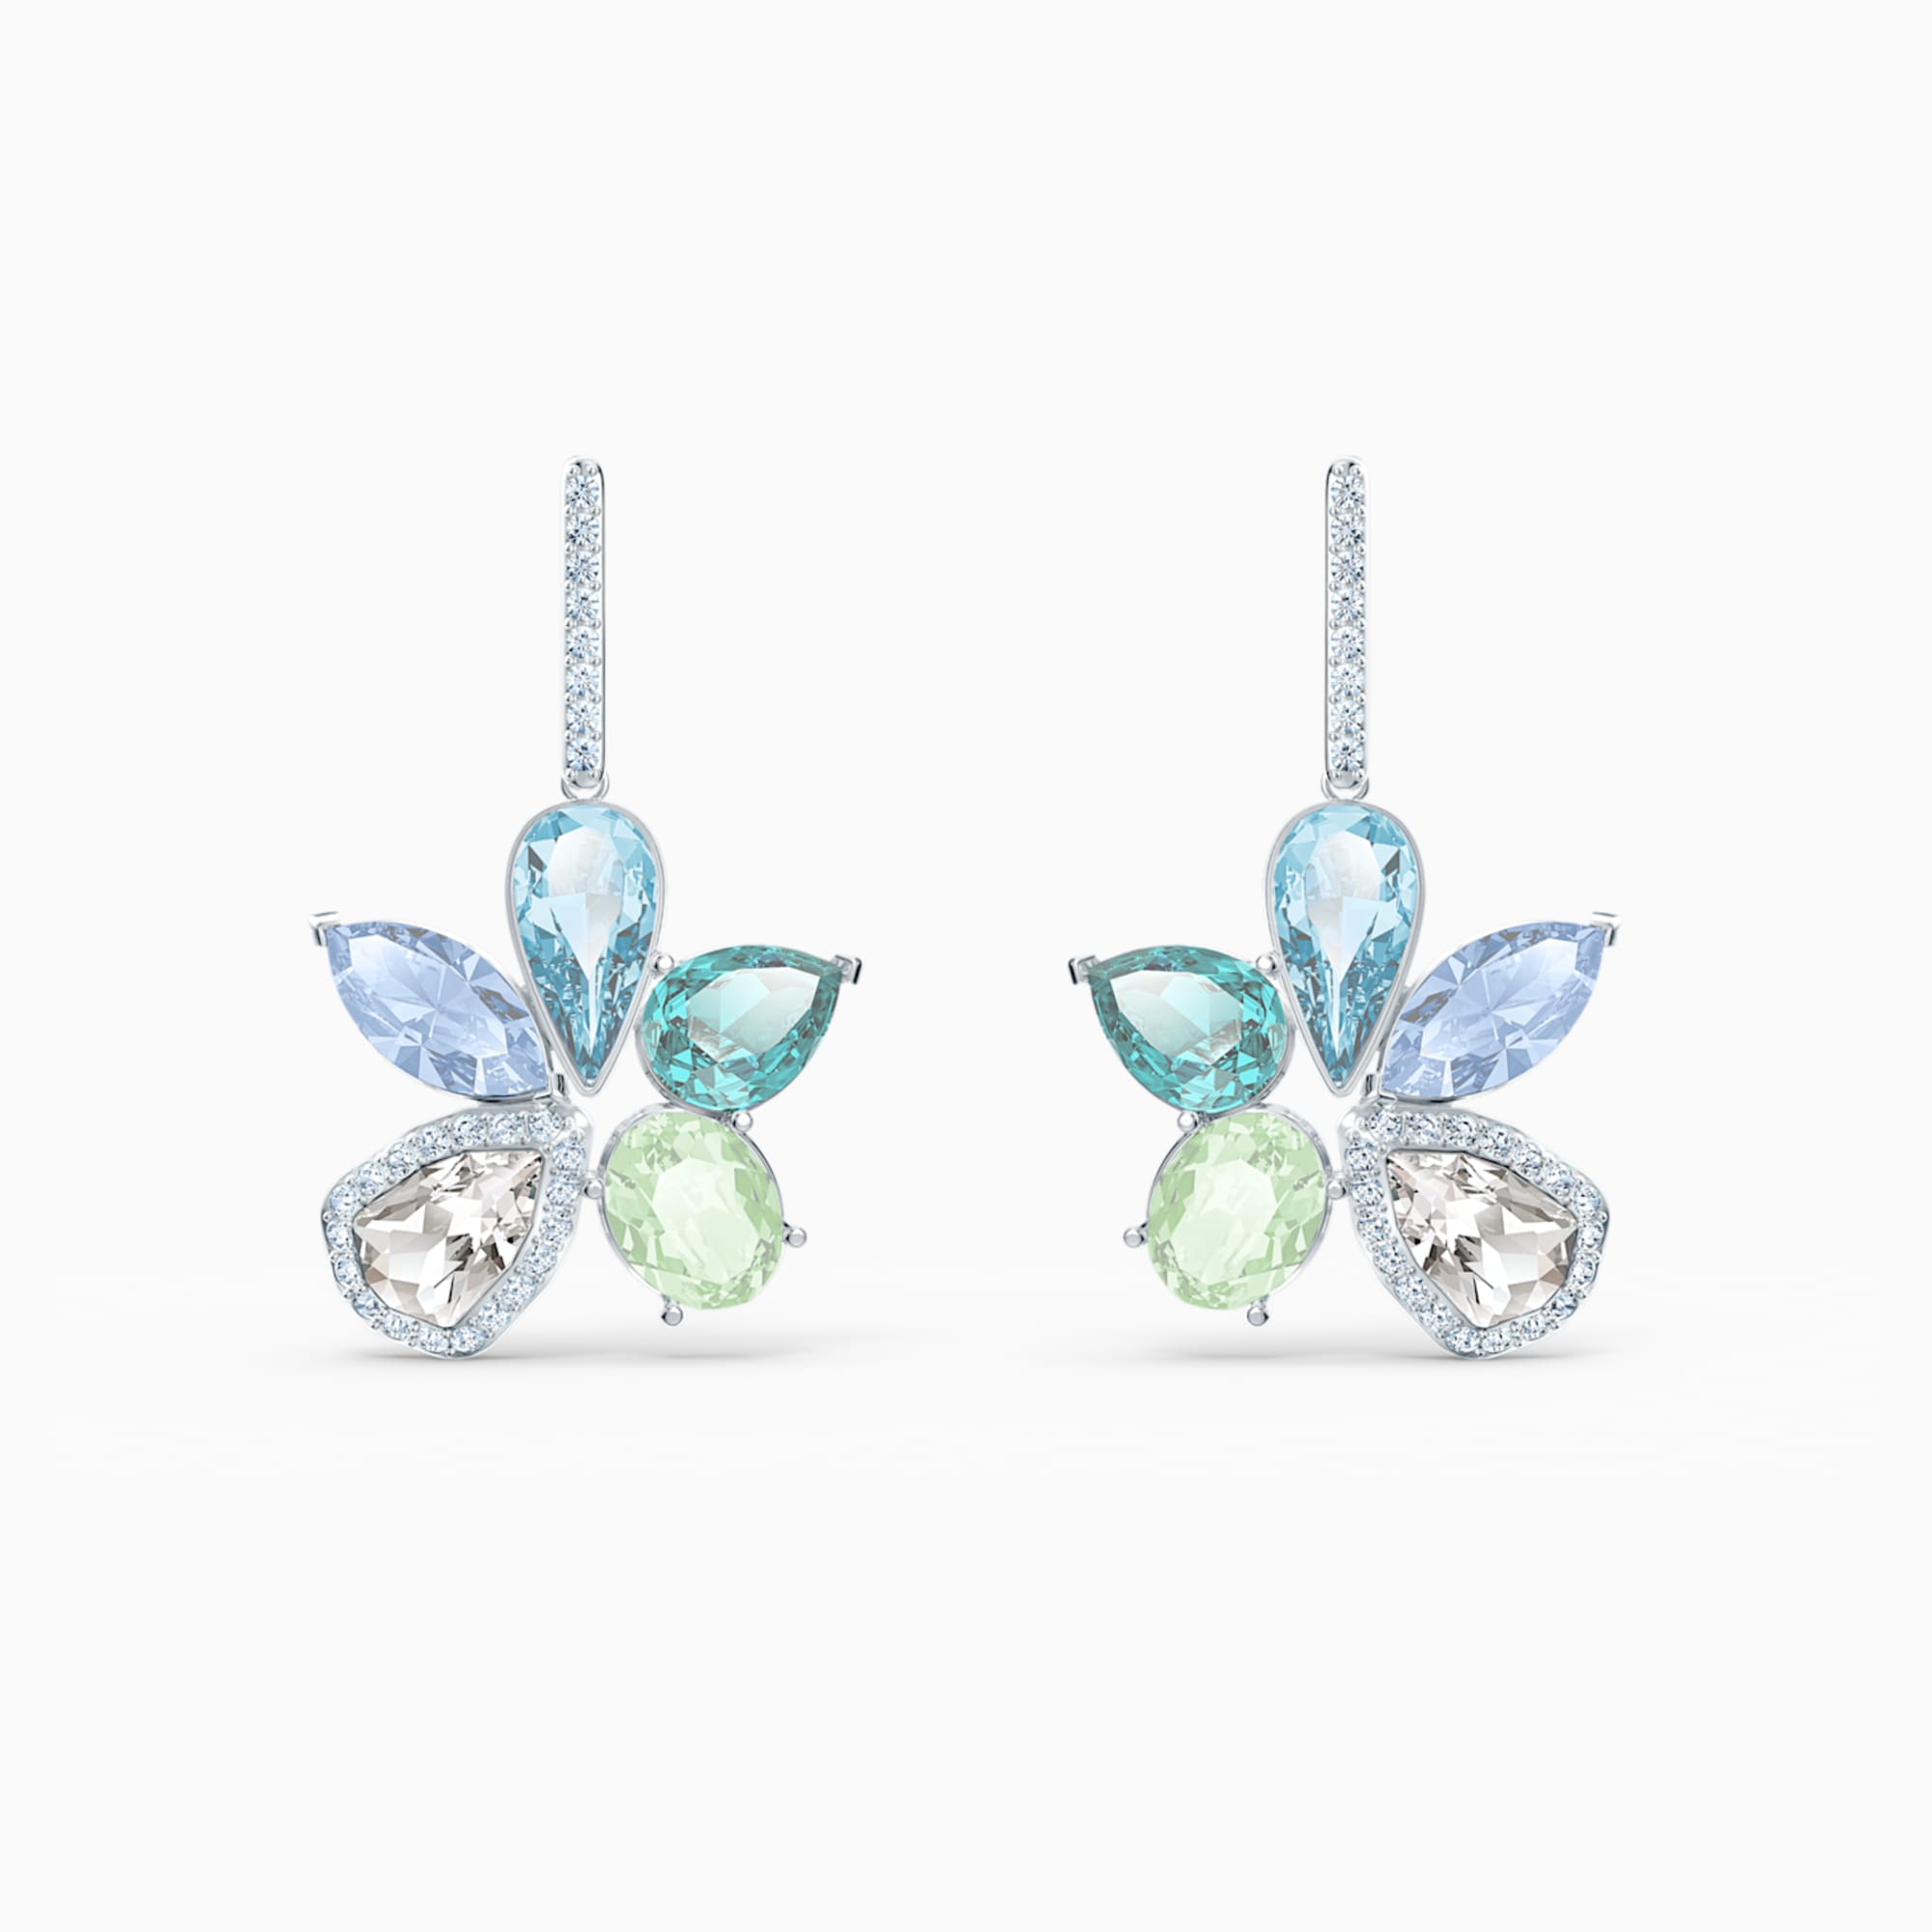 Swarovski Sunny Pierced Earrings, Light multi-colored, Rhodium plated by Swarovski